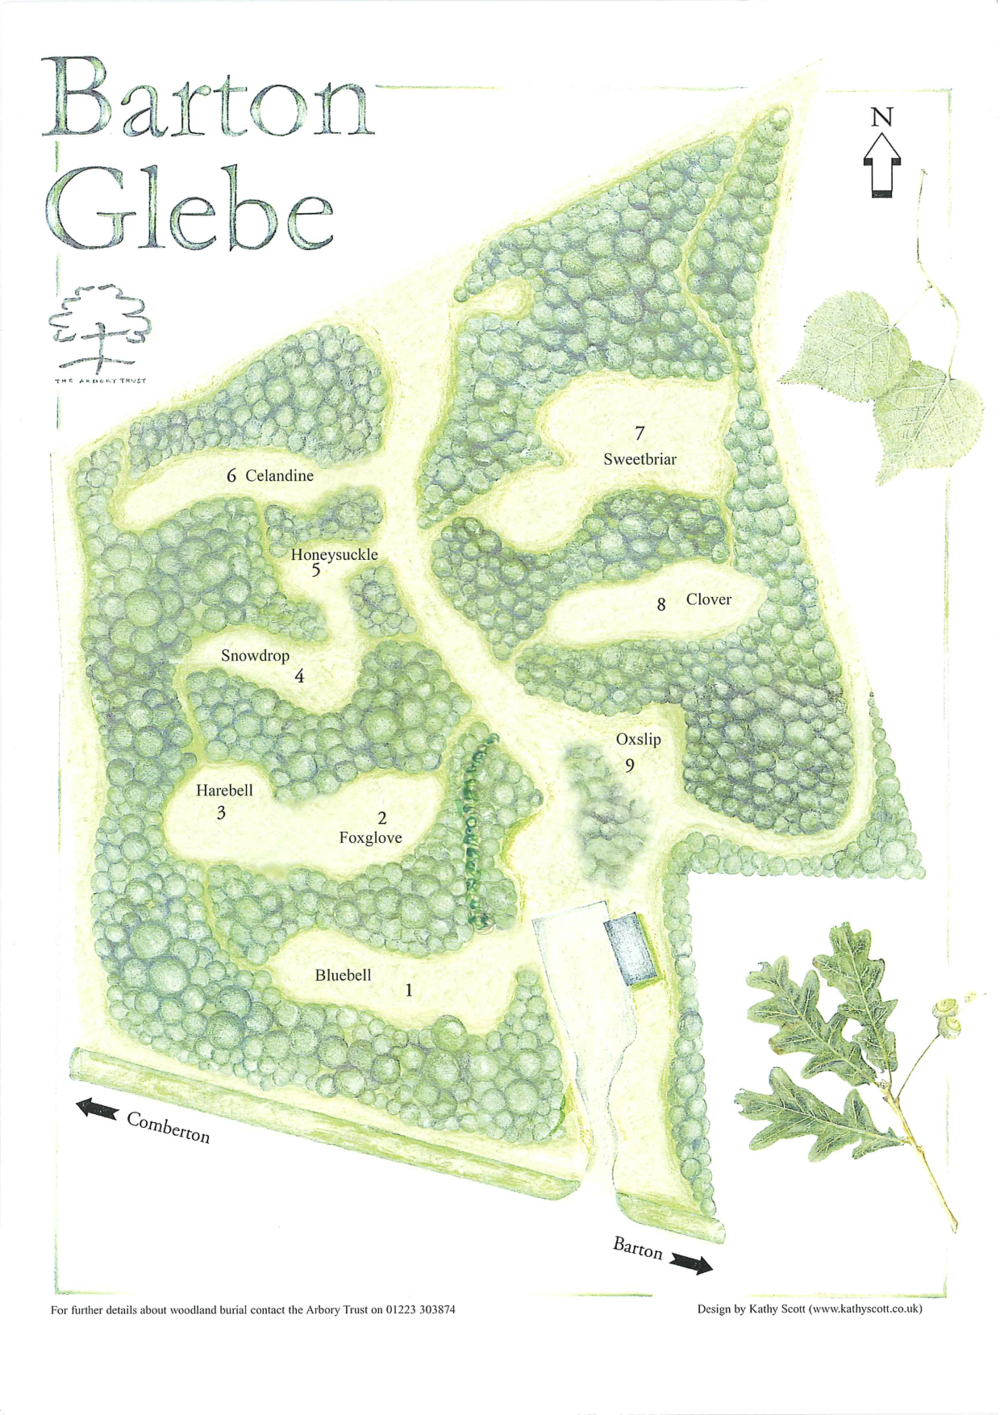 Woodland Burial Ground at Barton - South Glebe Layout